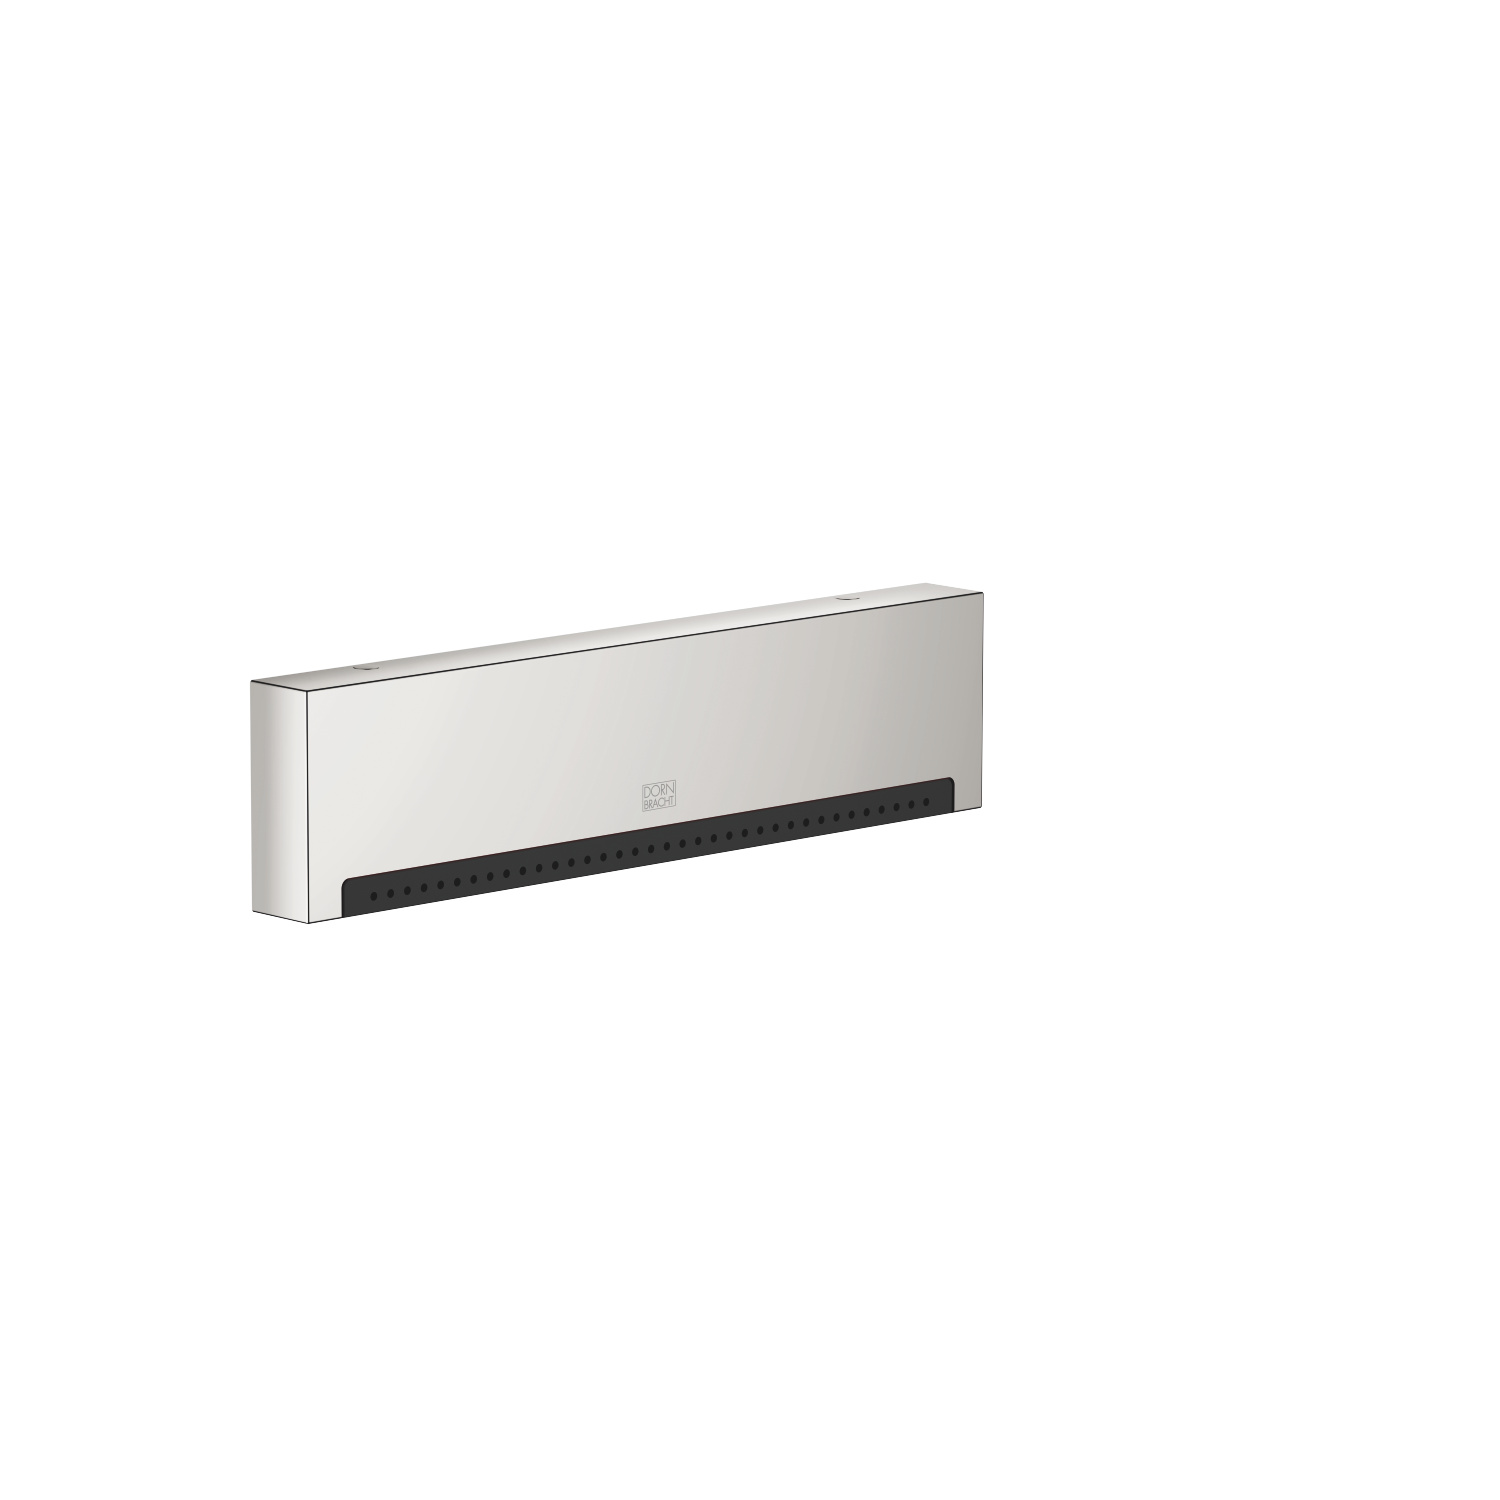 WATER FALL Cascade spout with PEARLSTREAM for wall-mounted installation - platinum